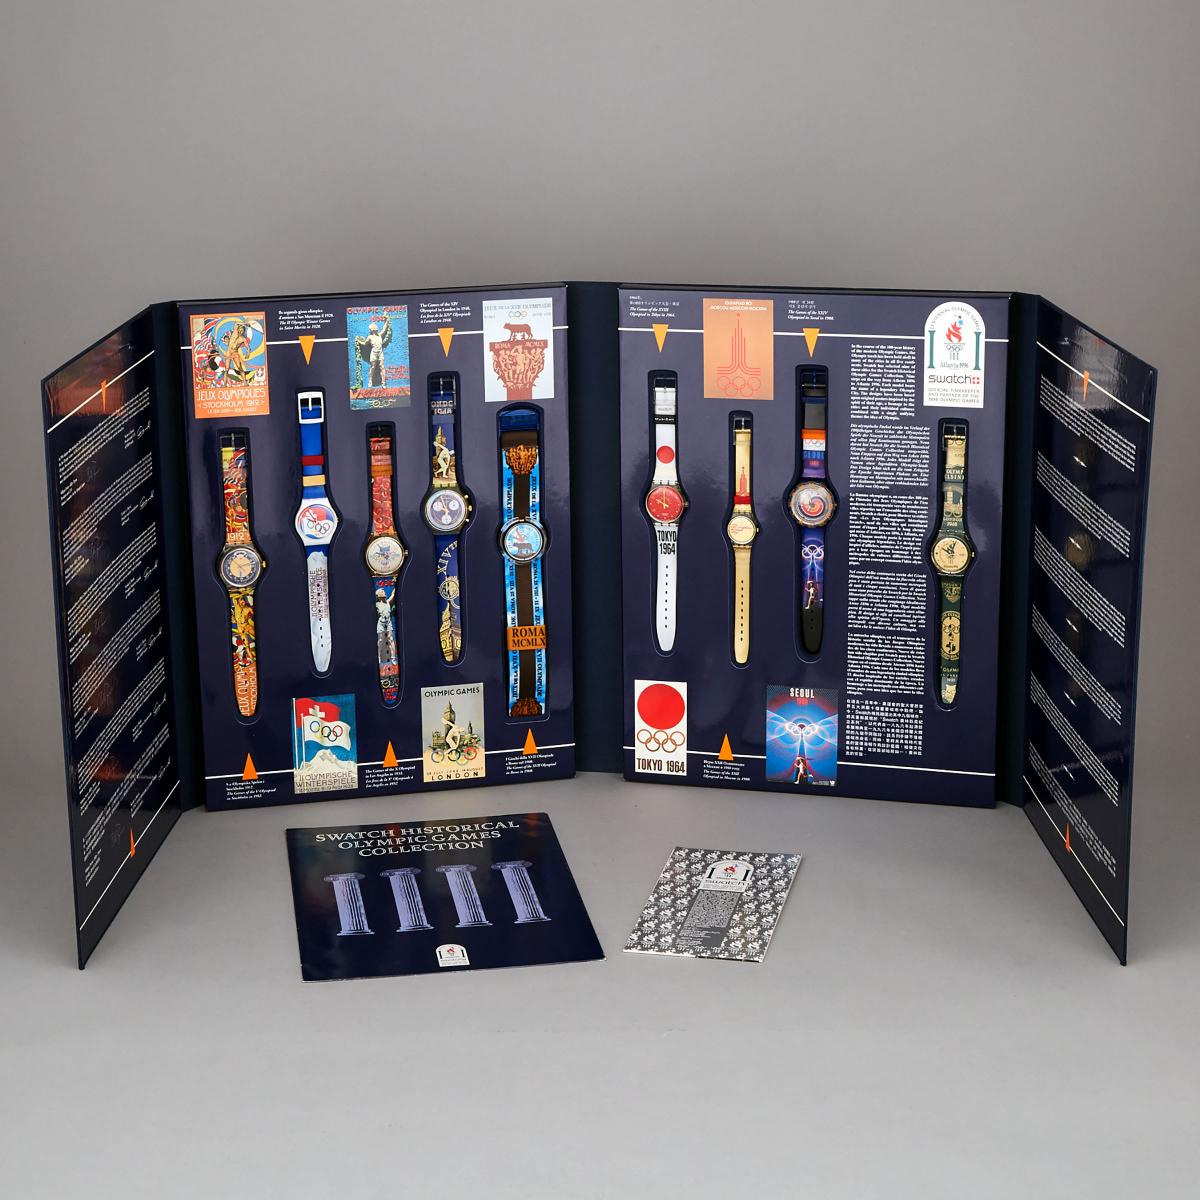 Lot 125 - Swatch Historical Olympic Games Collection of Wristwatches, 1996, each watch length 9.1 in — 23 cm;